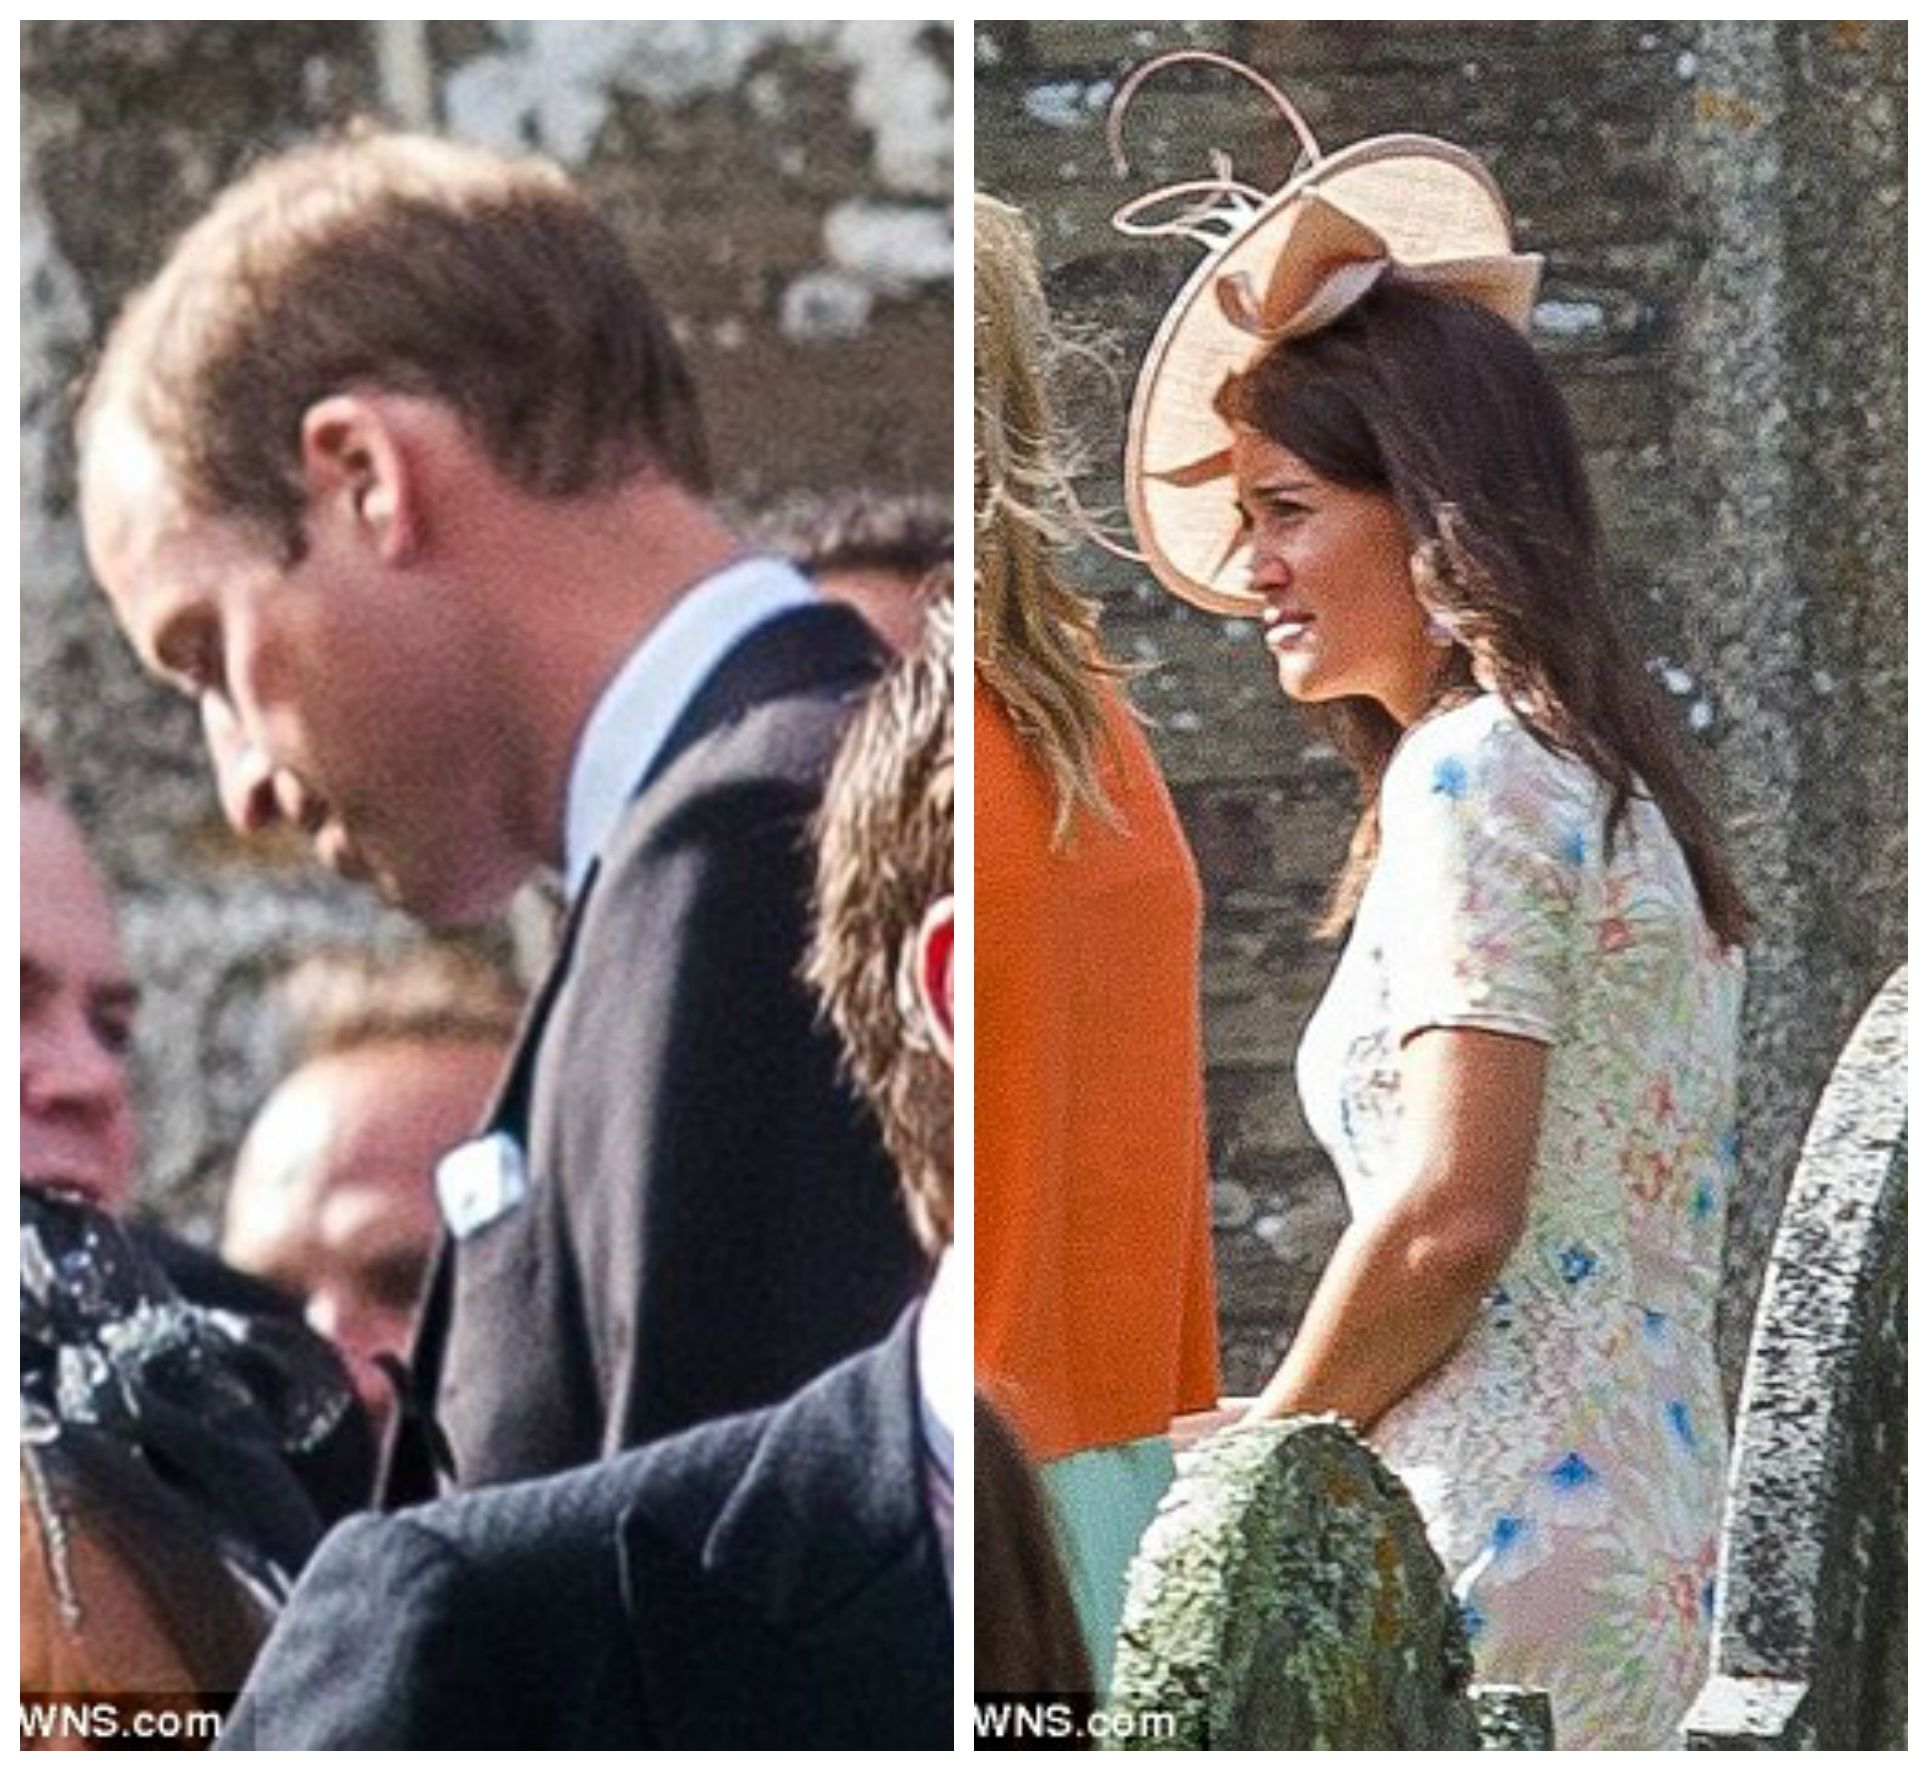 prince william and pippa middleton at wedding d2422